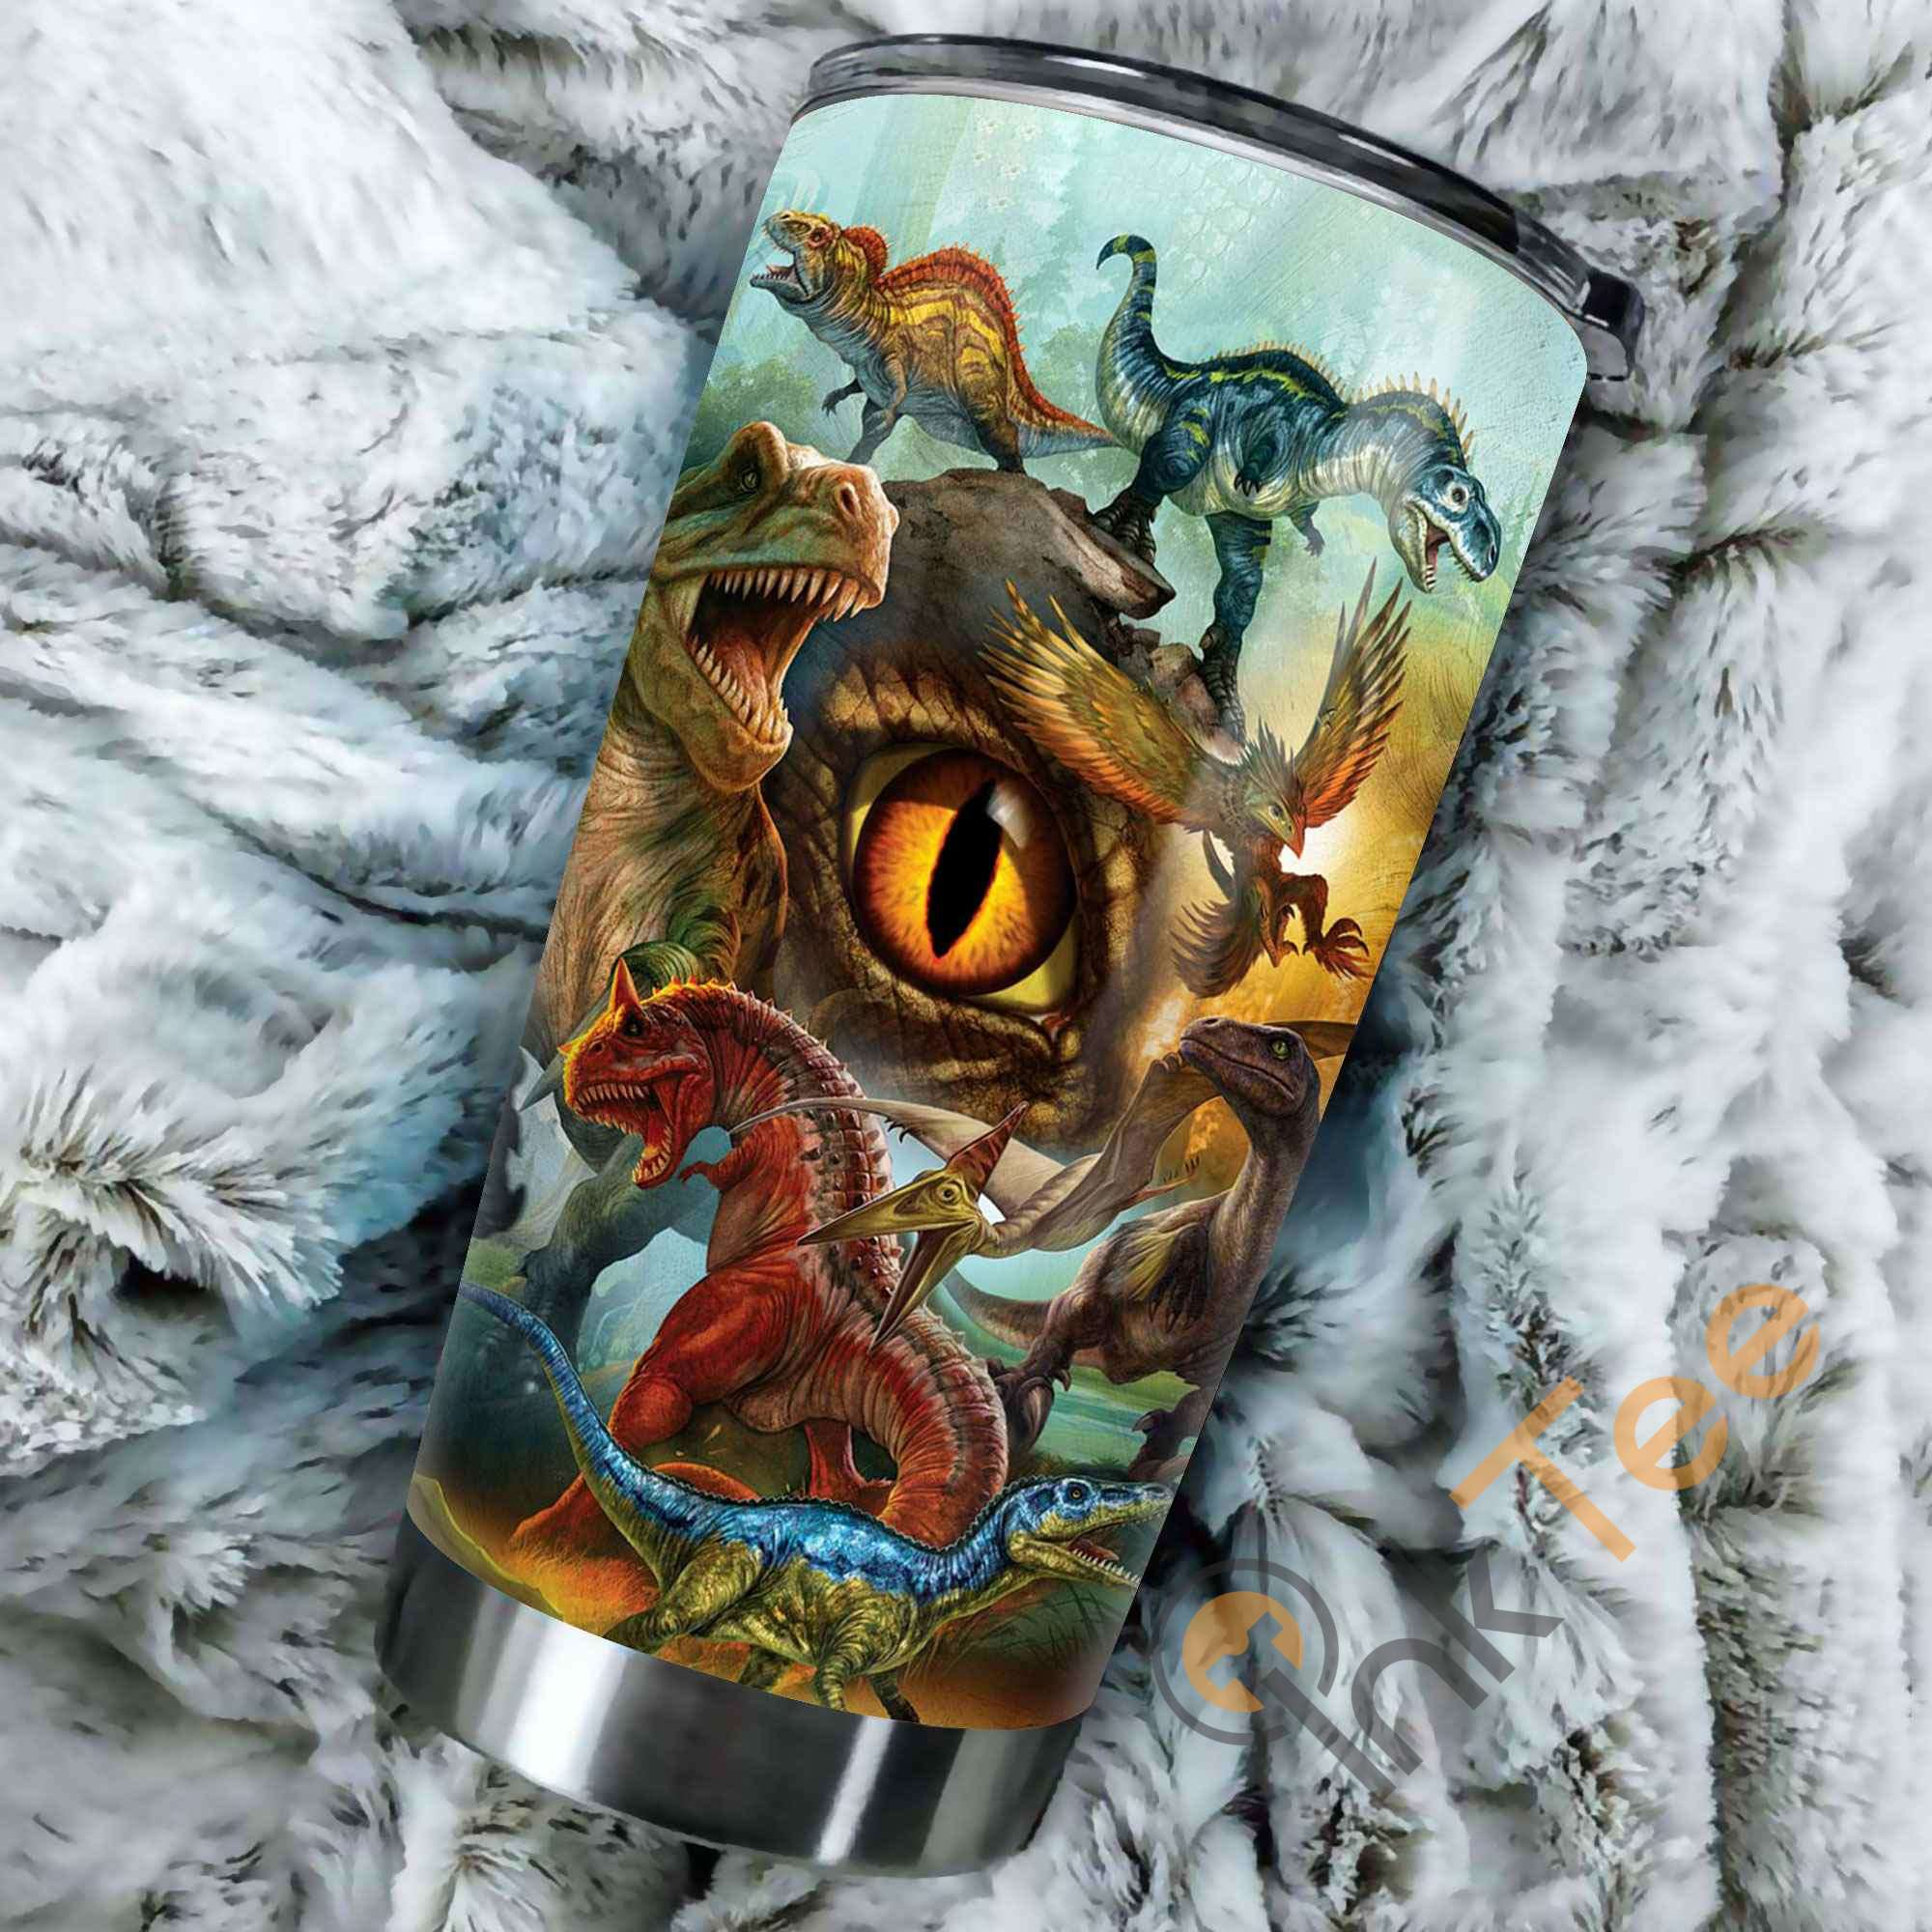 Beautiful Dinosaur Art Amazon Best Seller Sku 3342 Stainless Steel Tumbler